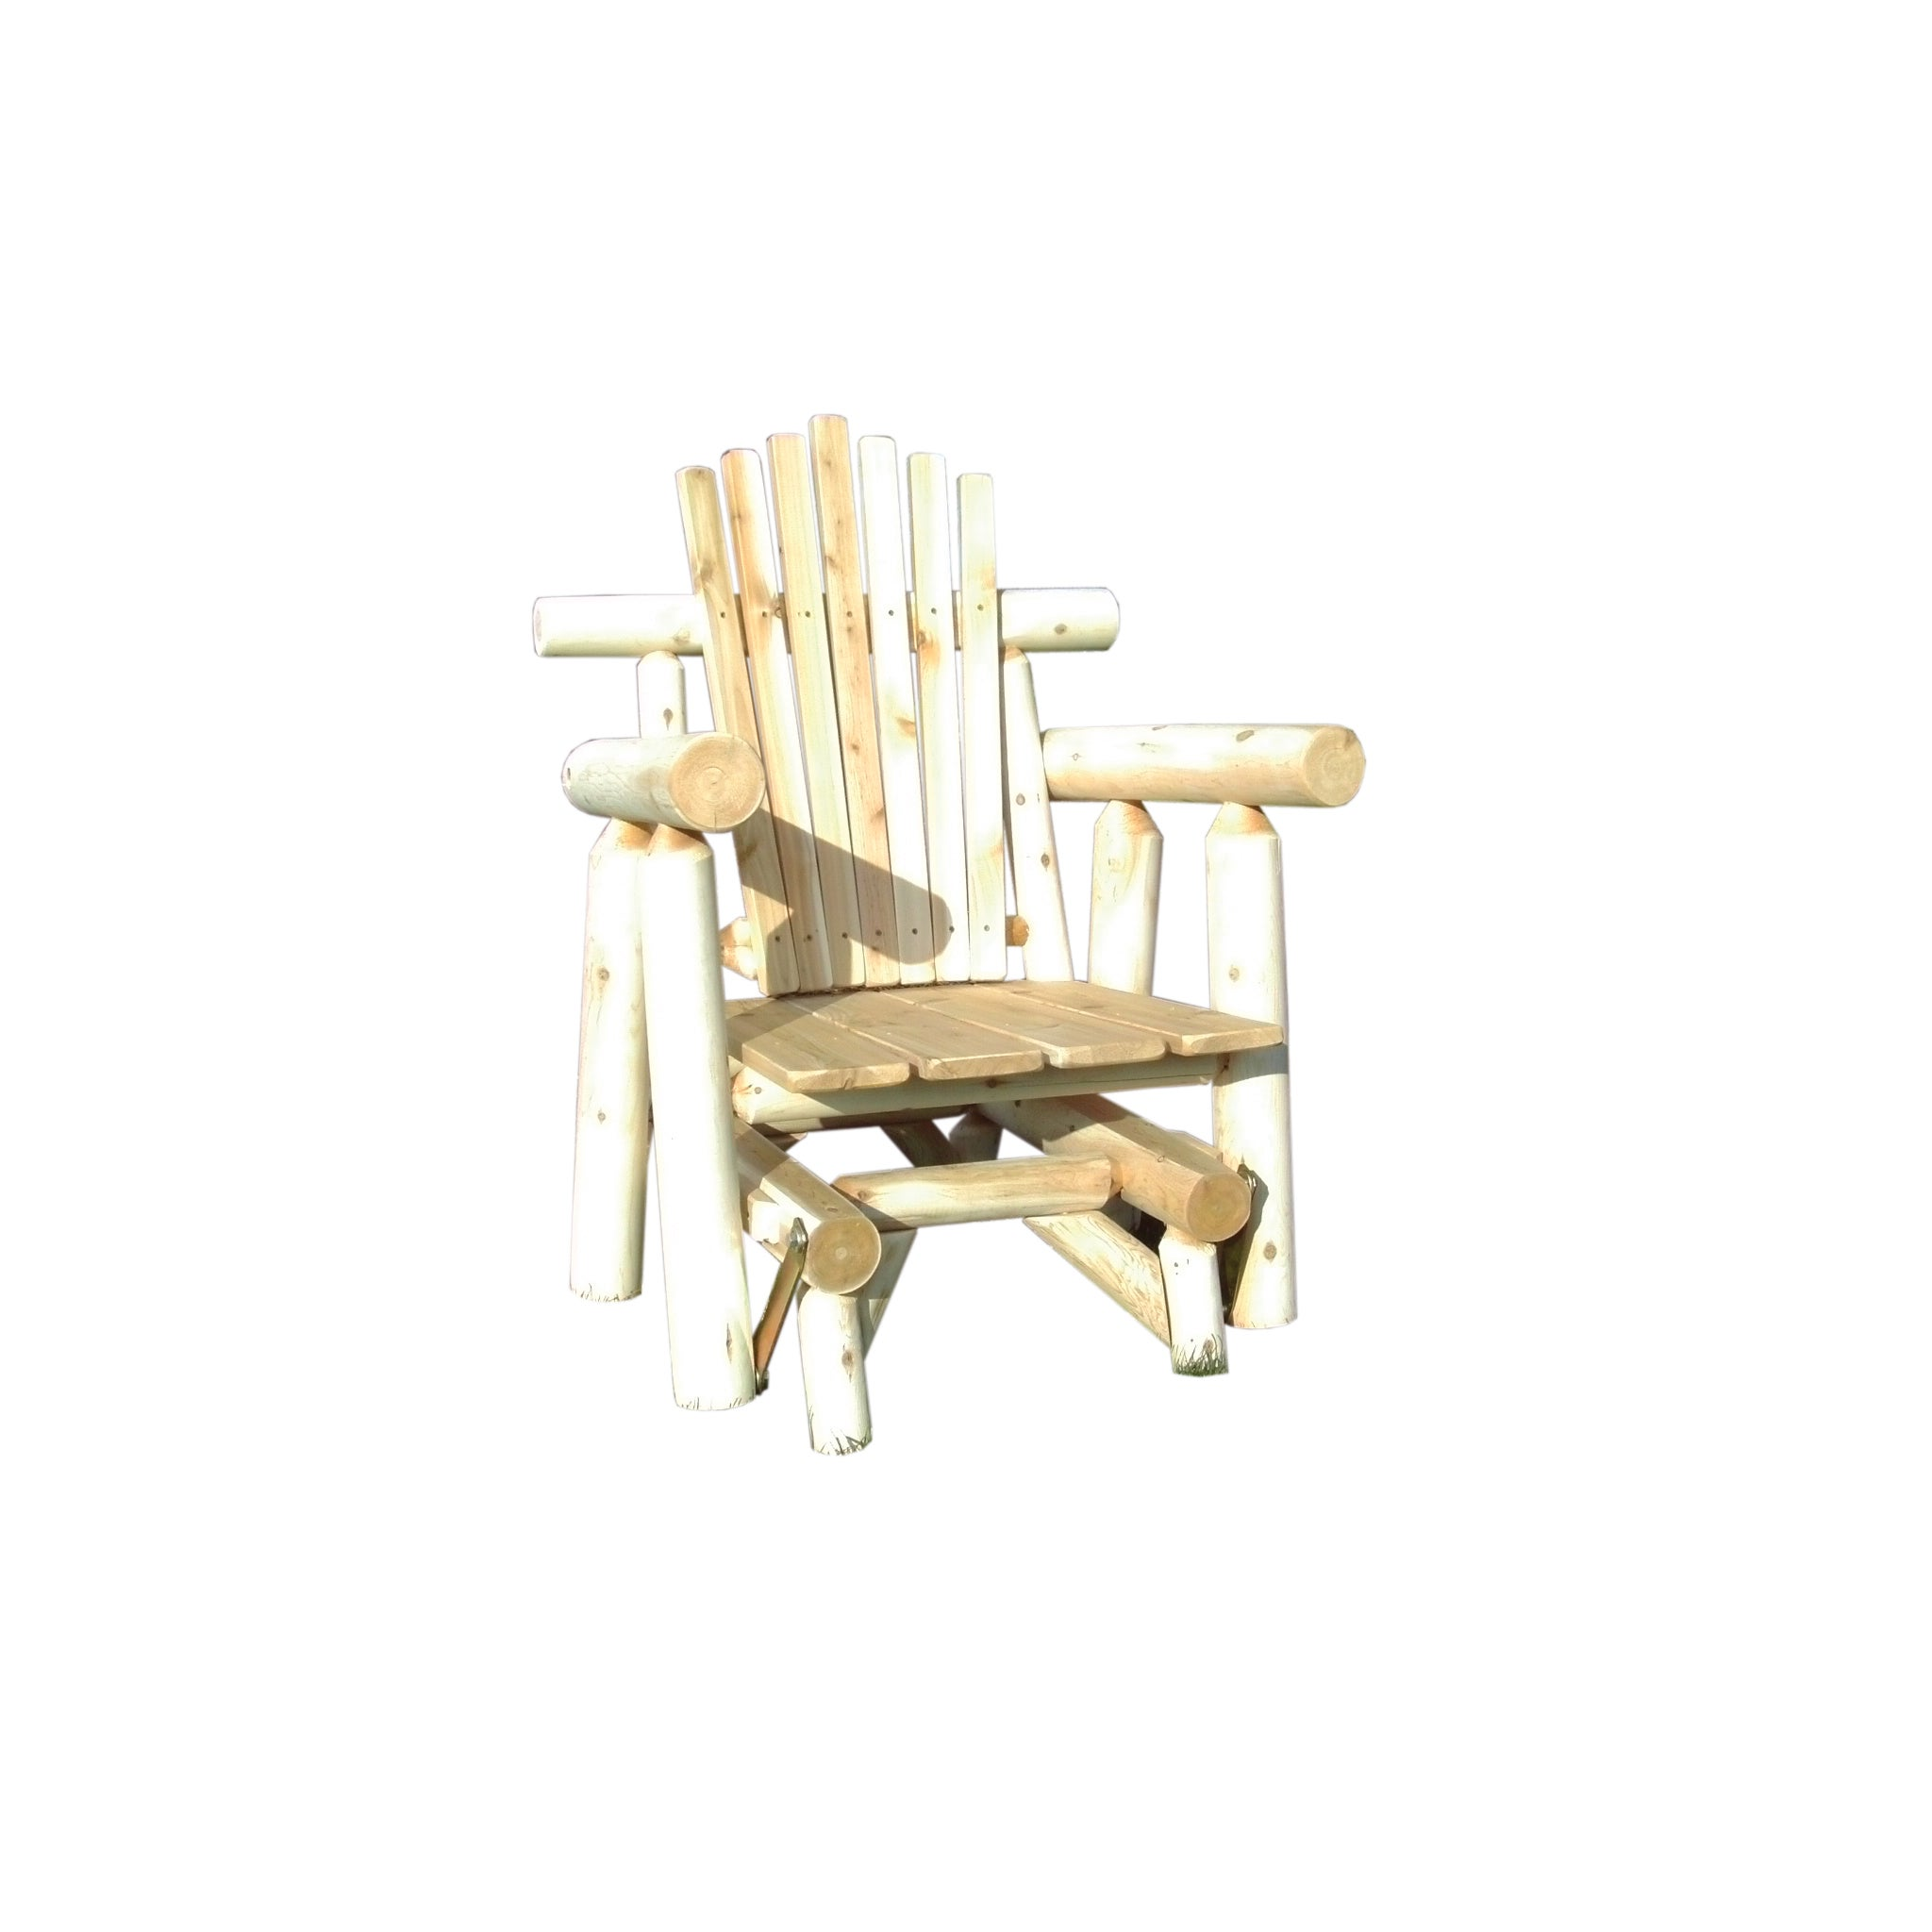 Rustic Outdoor White Cedar Log Adirondack Glider Chair  Amish Made In The  USA